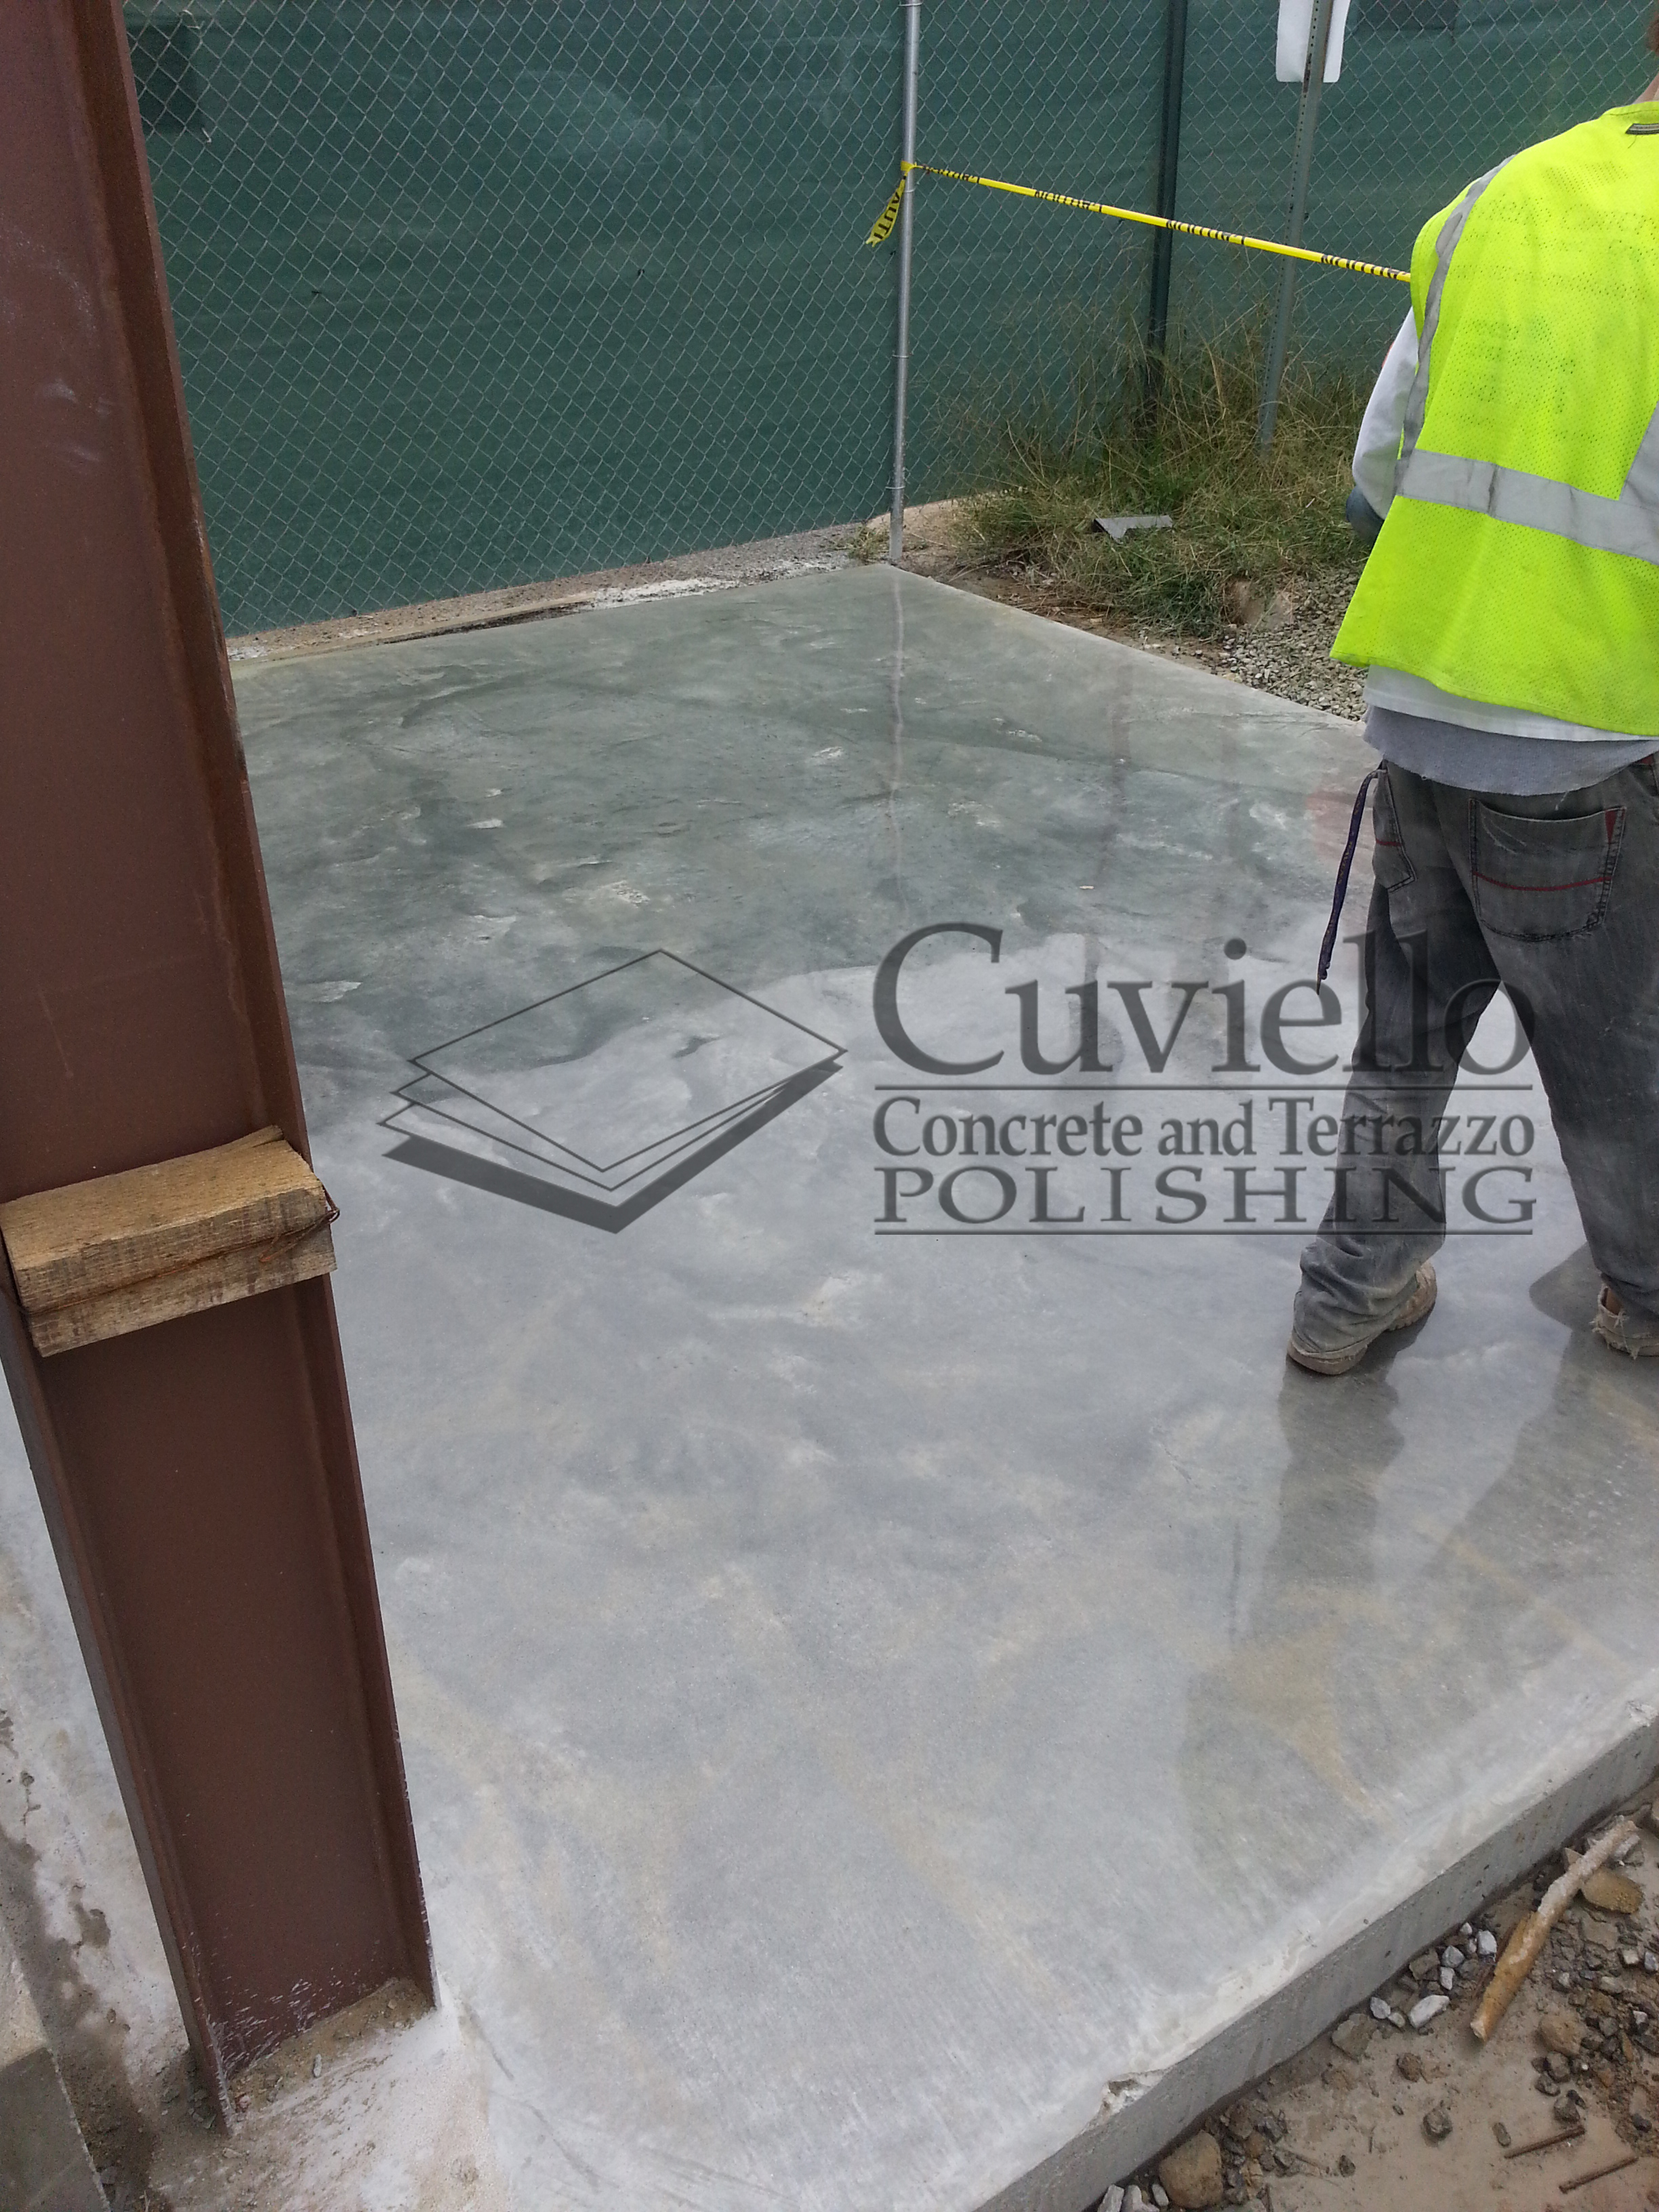 Cuviello Concrete Terrazzo Polishing Blog Polished